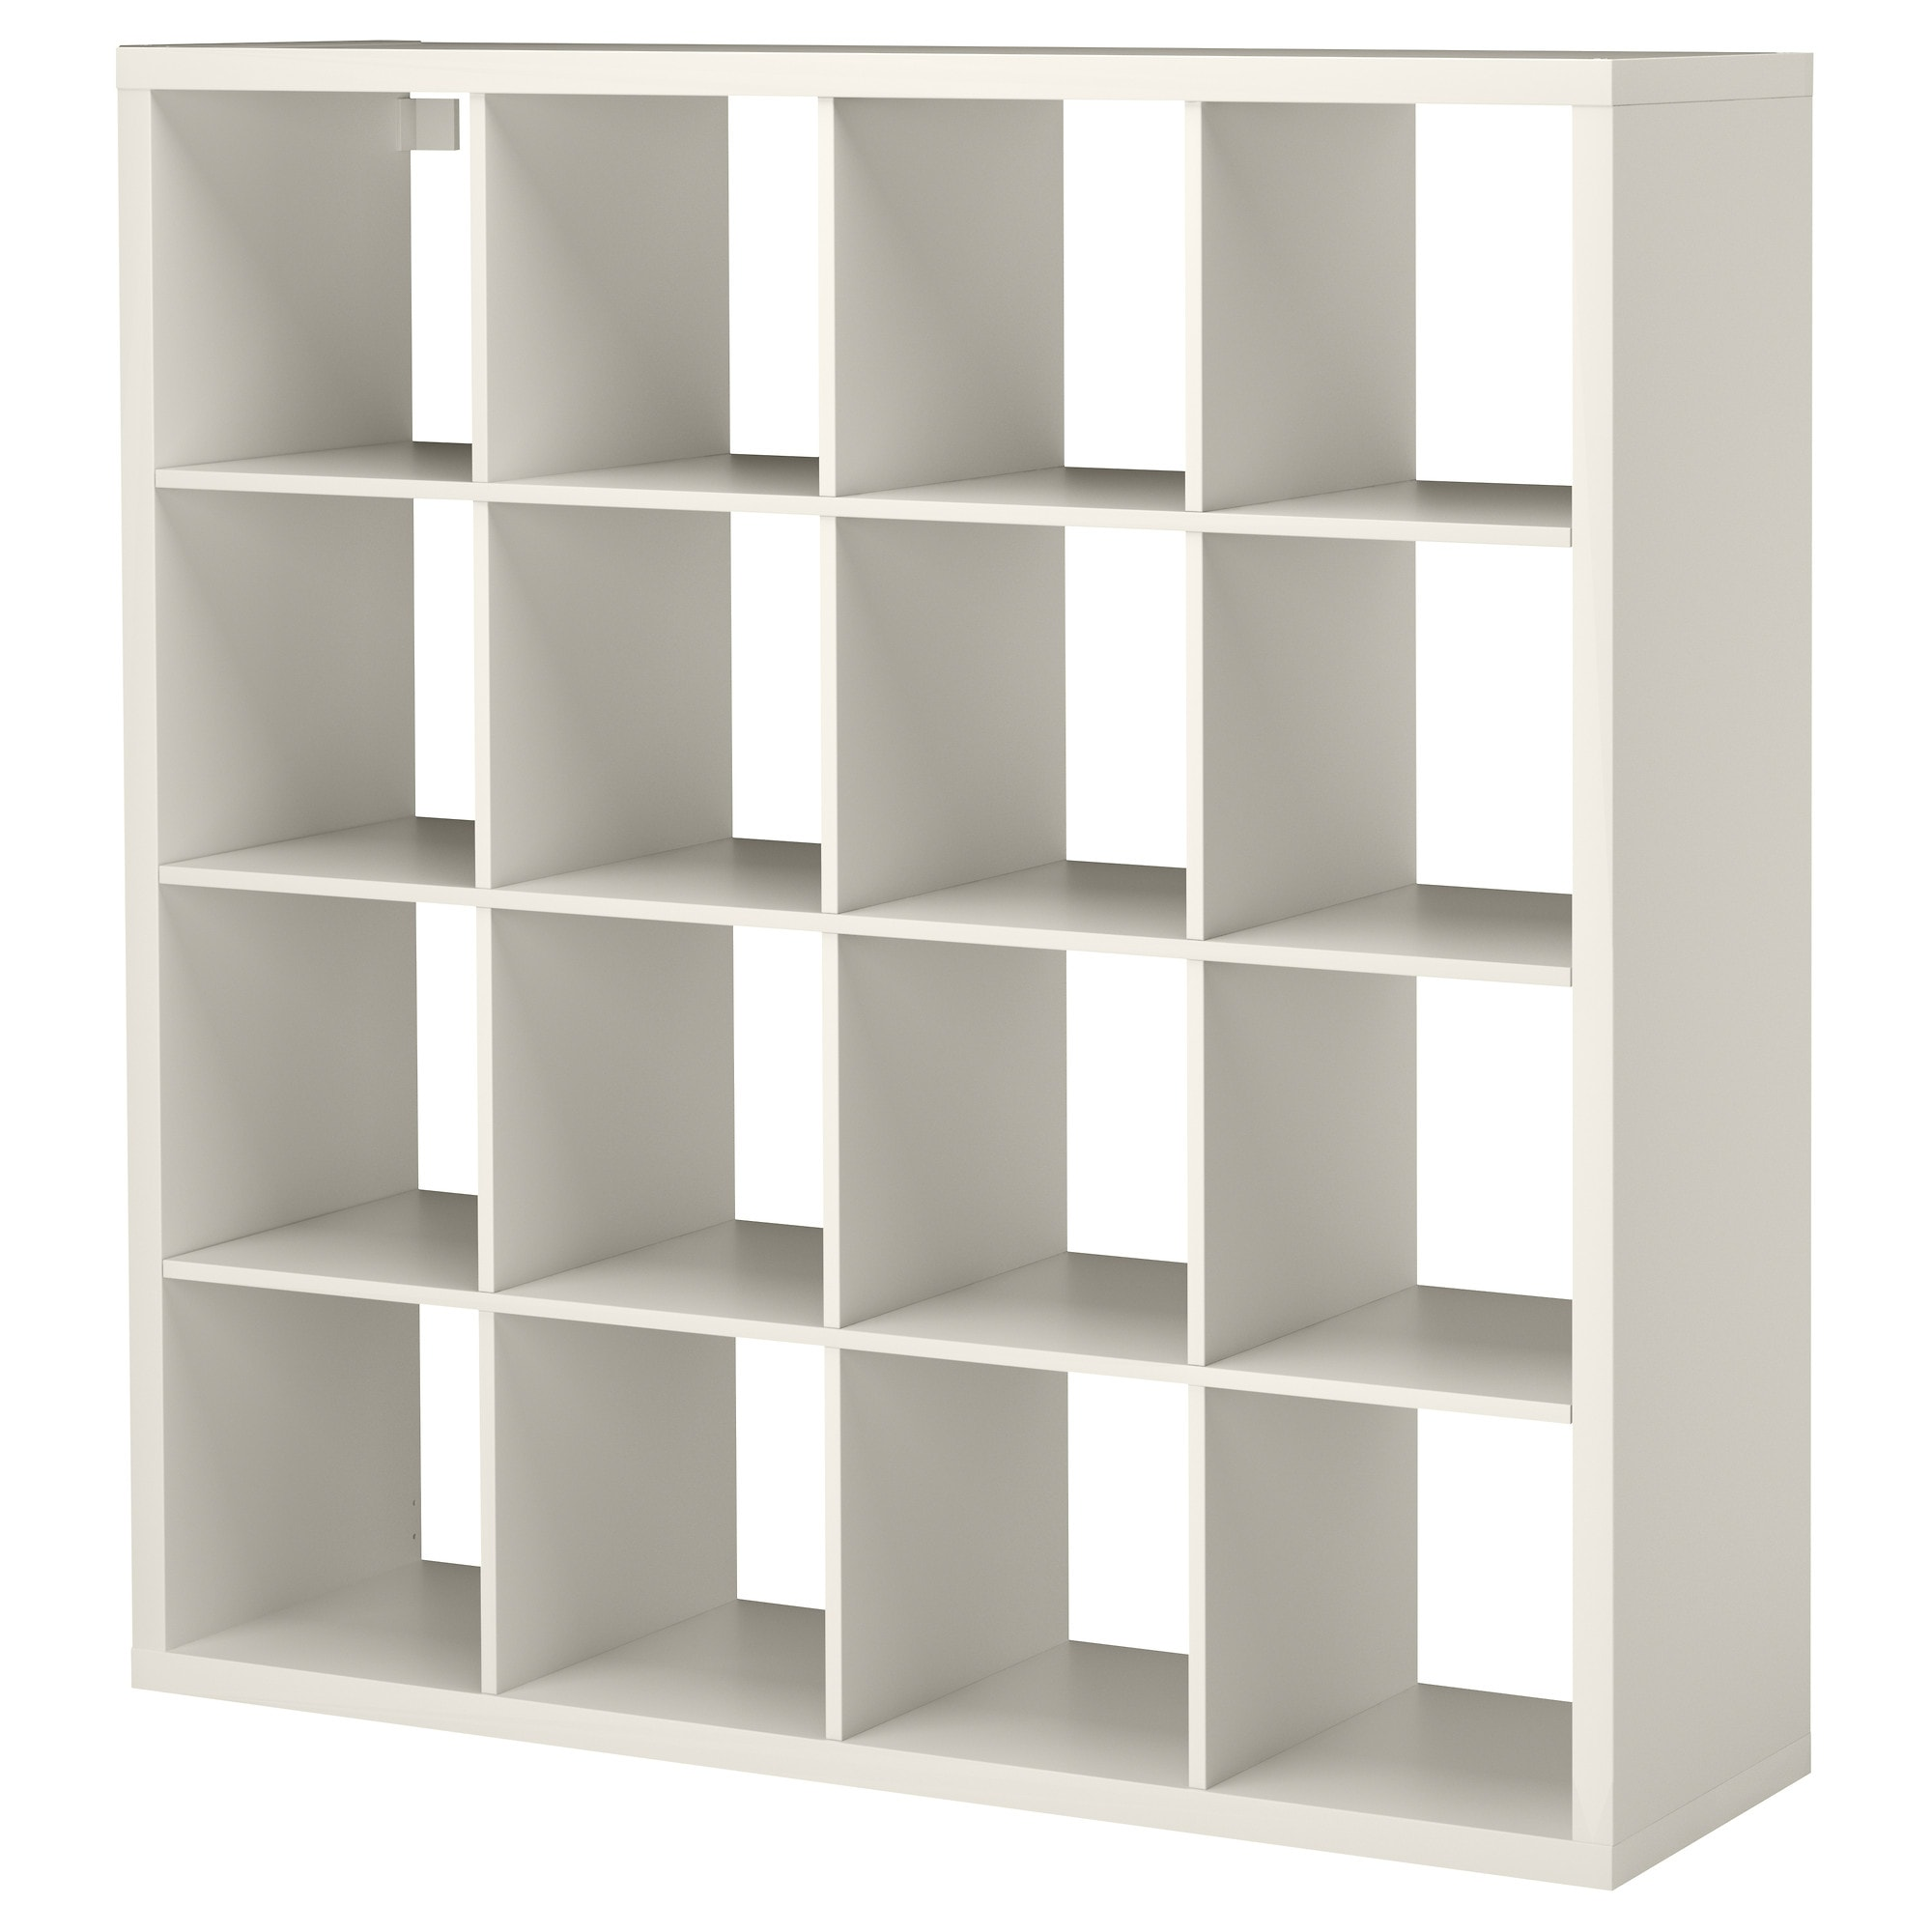 small products storage bookcases art white furniture gb en ikea bookcase gersby bookshelf cm